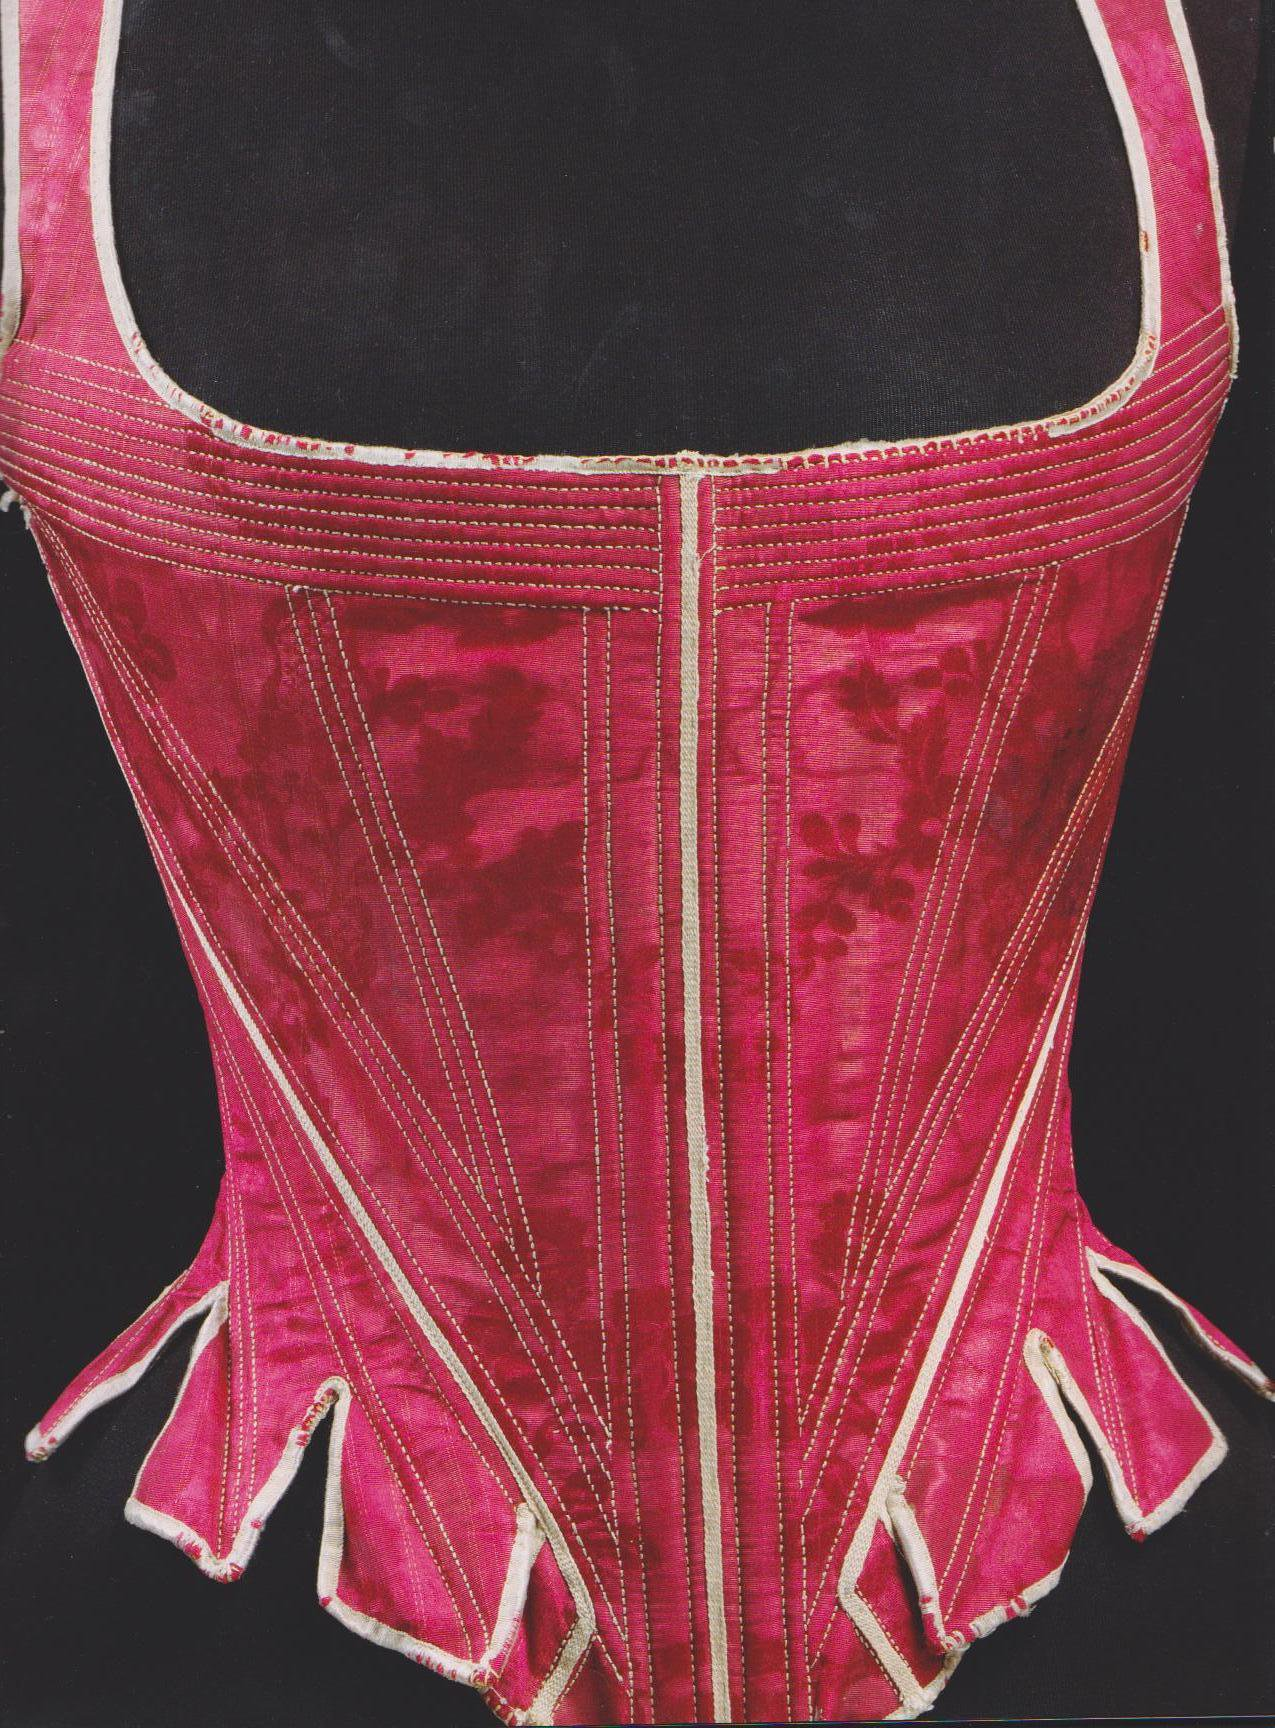 400 Years of Fashion - V&A Book - Inner Page 4 - HandBound Costumes Bibliography - Eighteenth Century Historical Costume Research - 1700's Clothing - What the Georgians Wore - Stays and Corsets